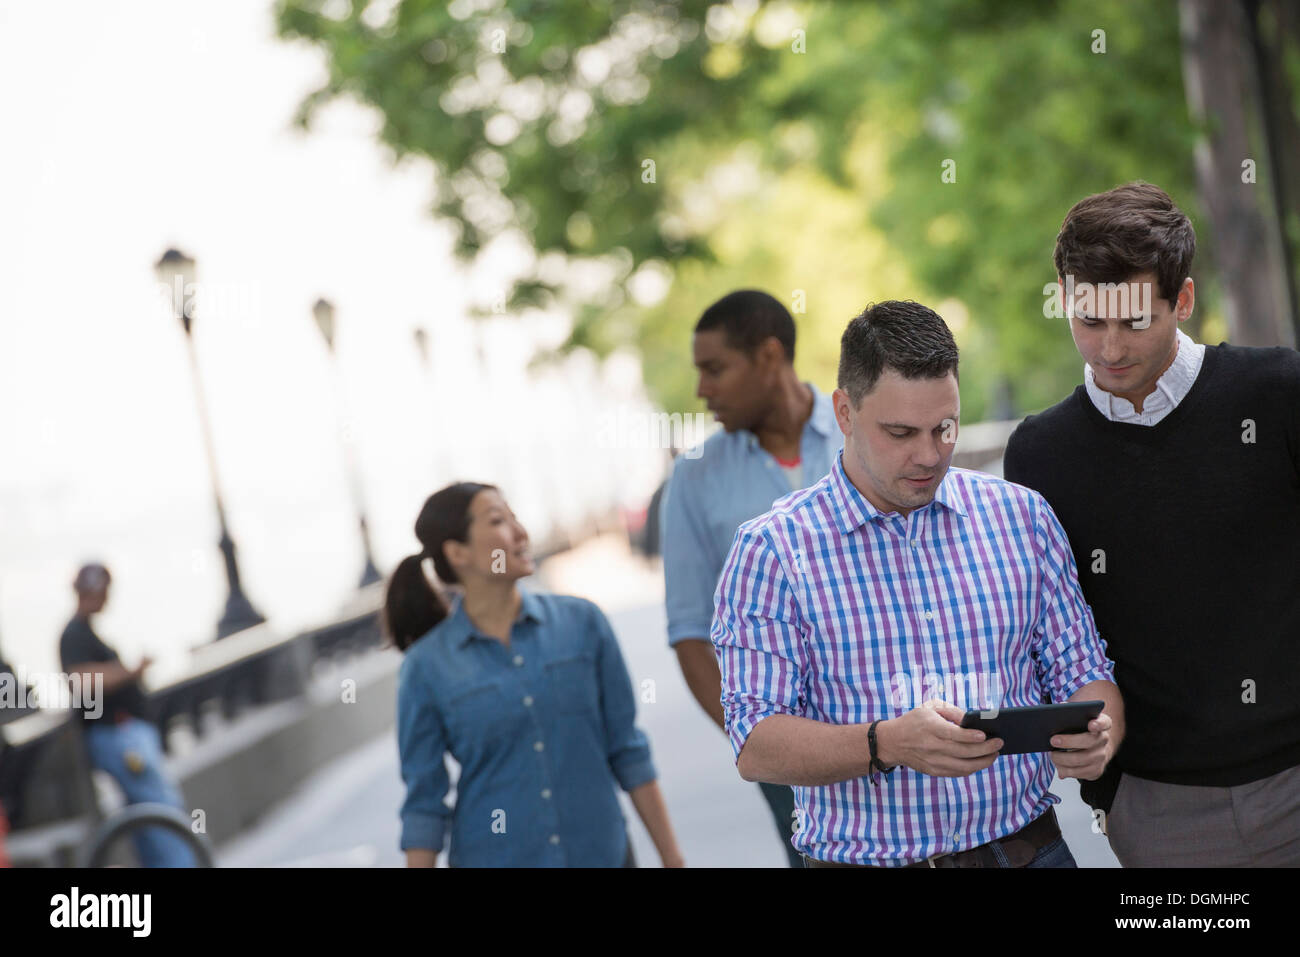 Summer in the city. Four people in a group. One using his digital tablet. Stock Photo